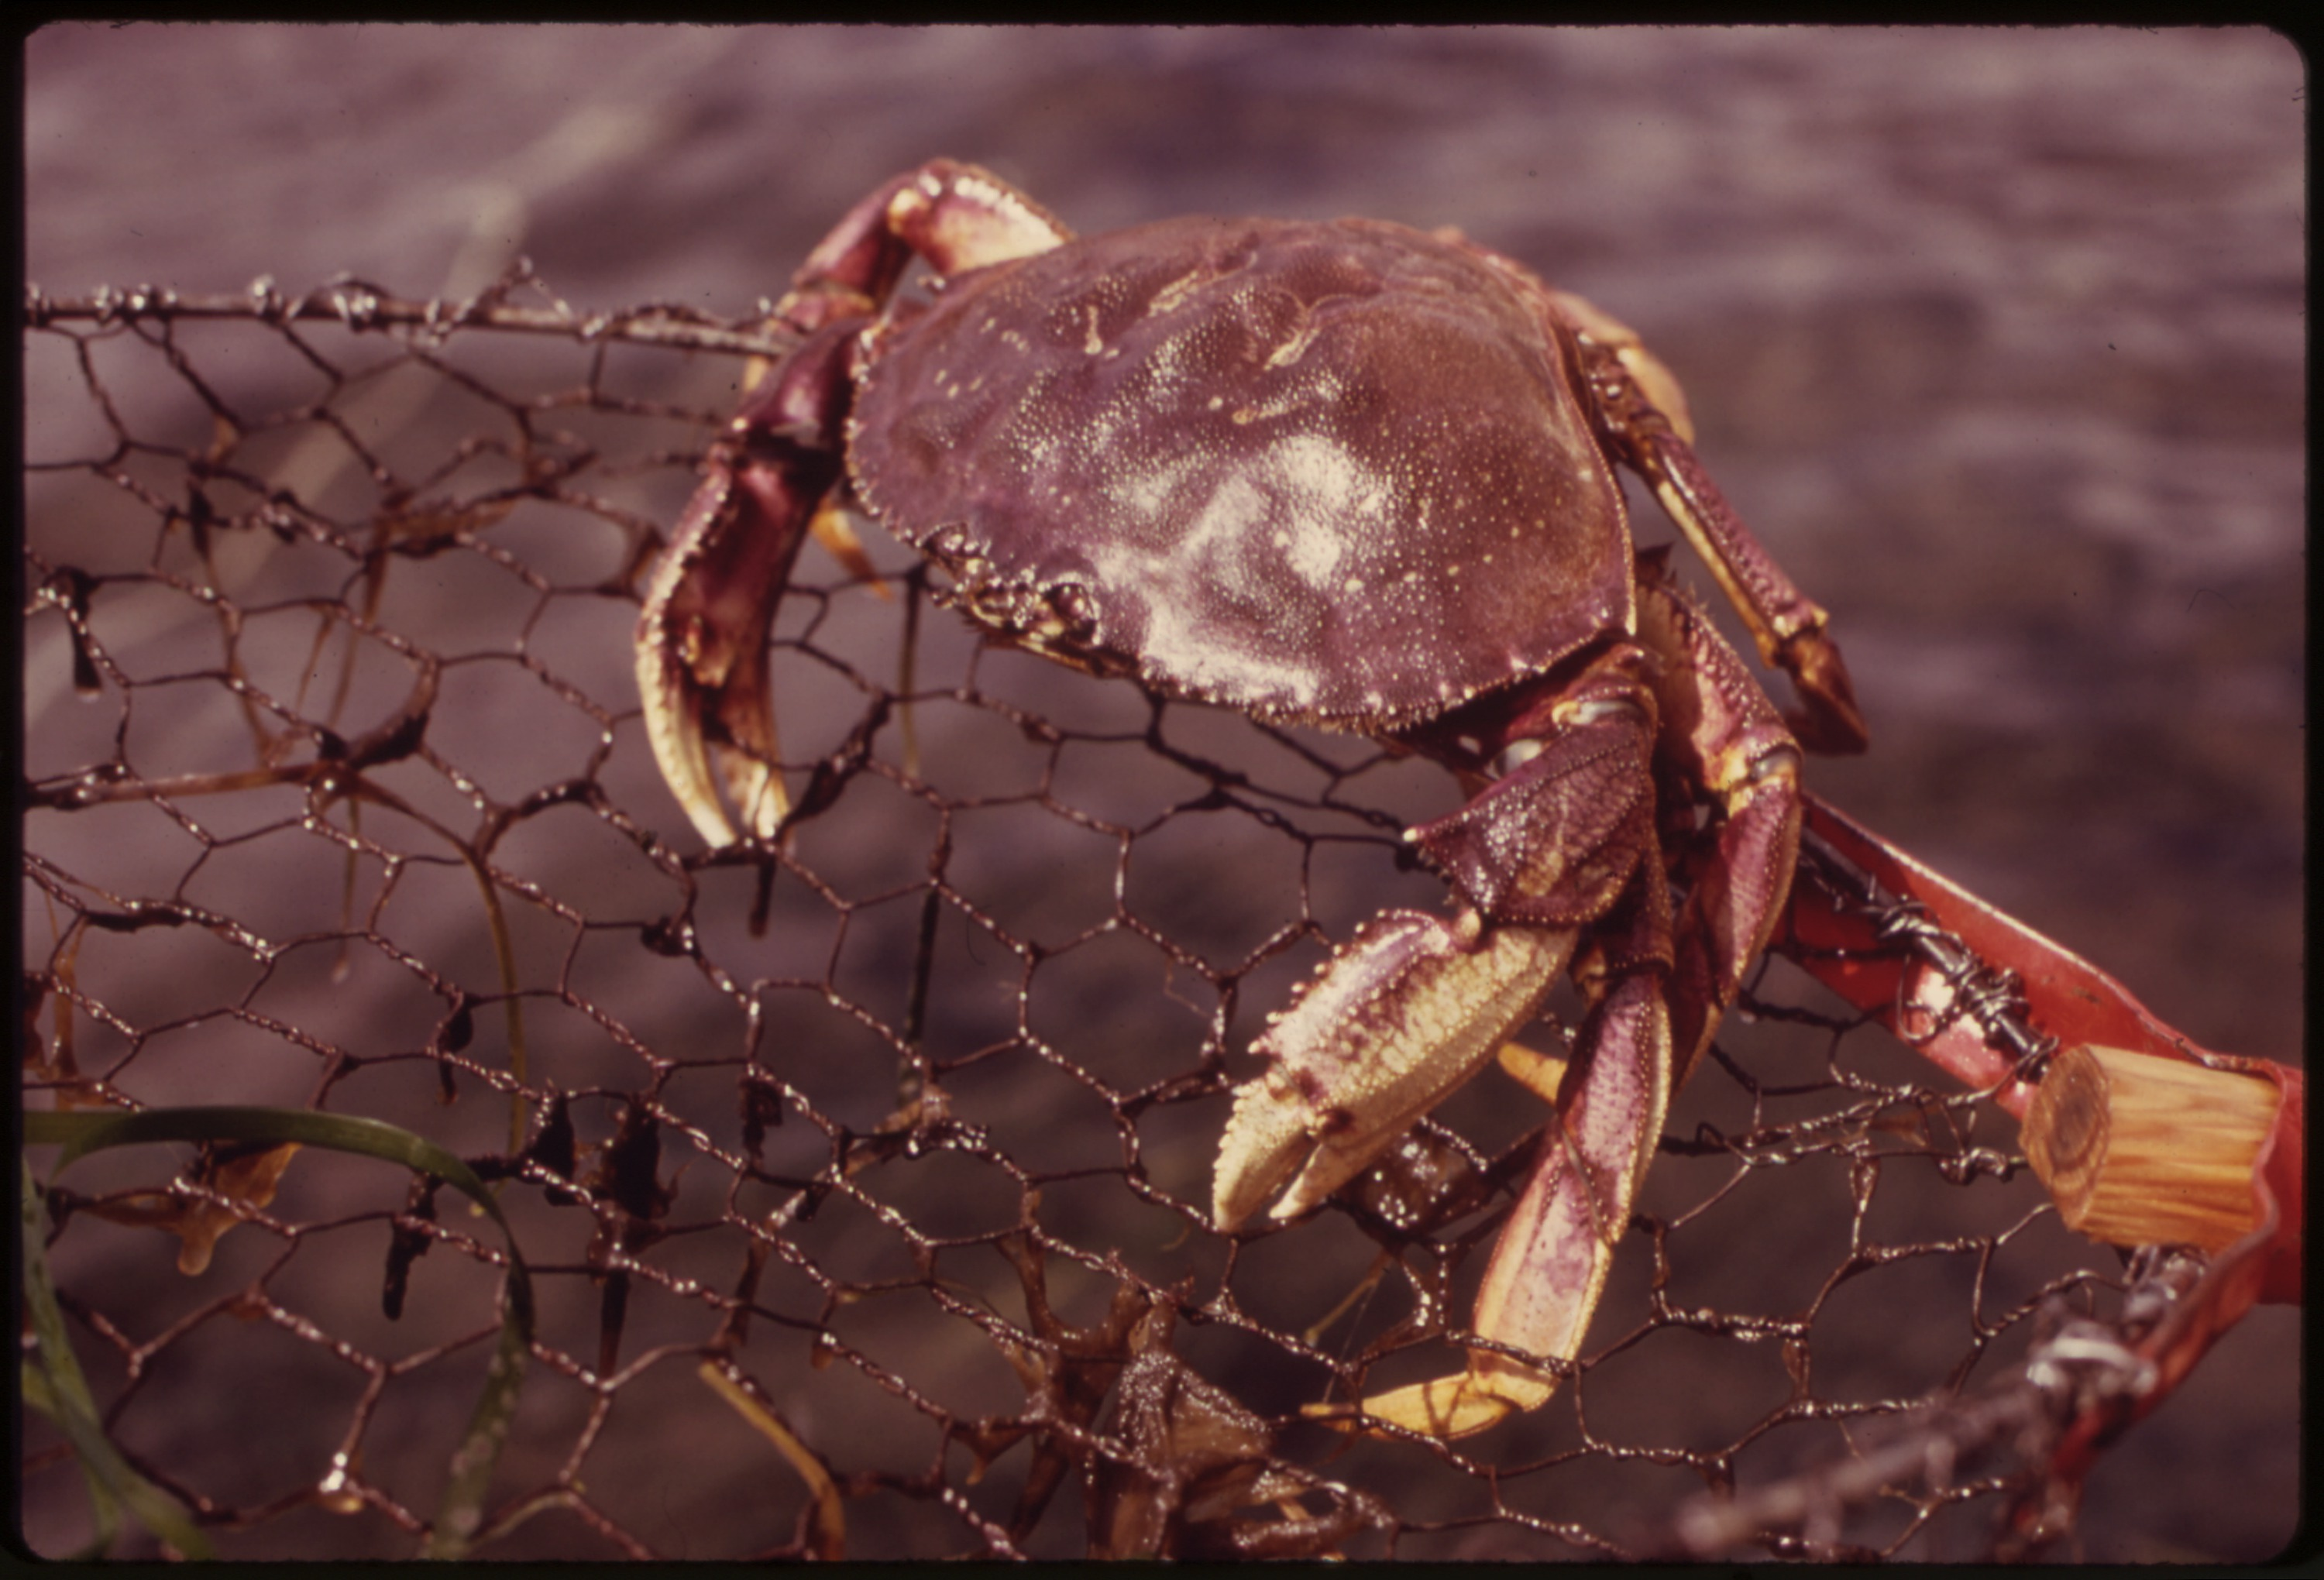 Crab caught in a net